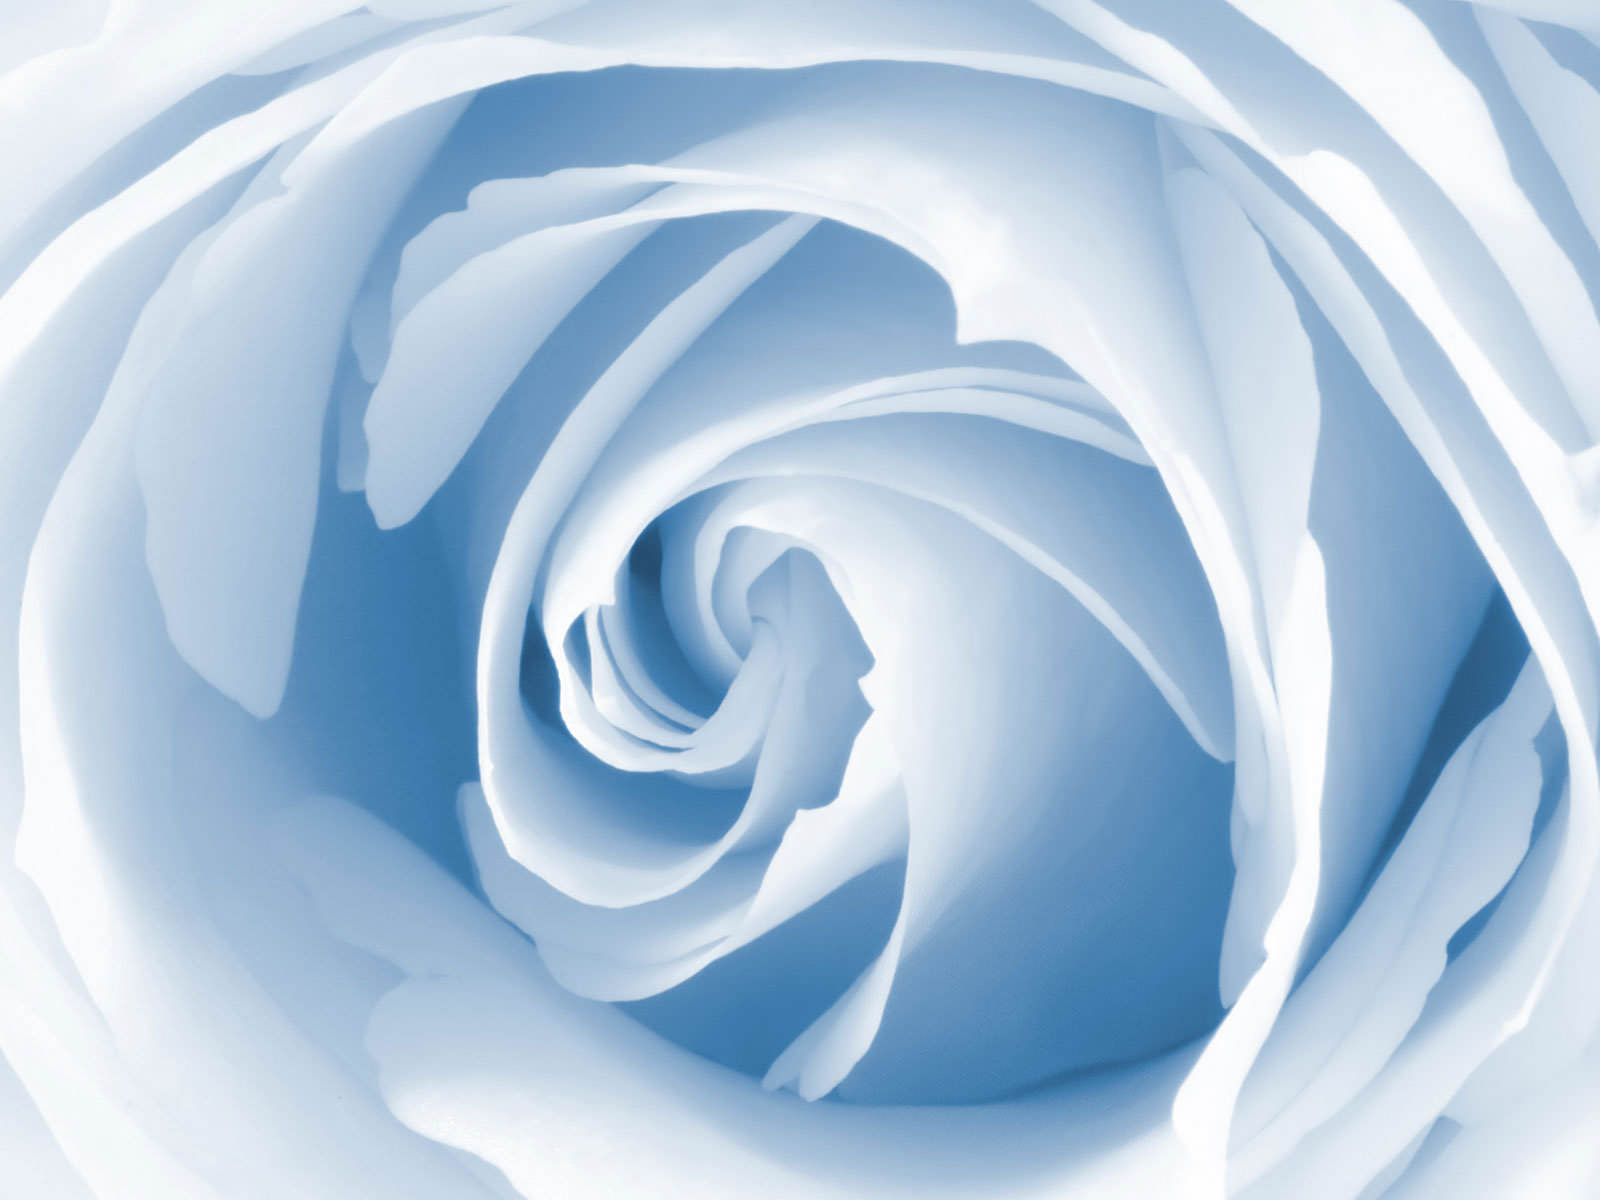 Blue Rose Picture 1600x1200